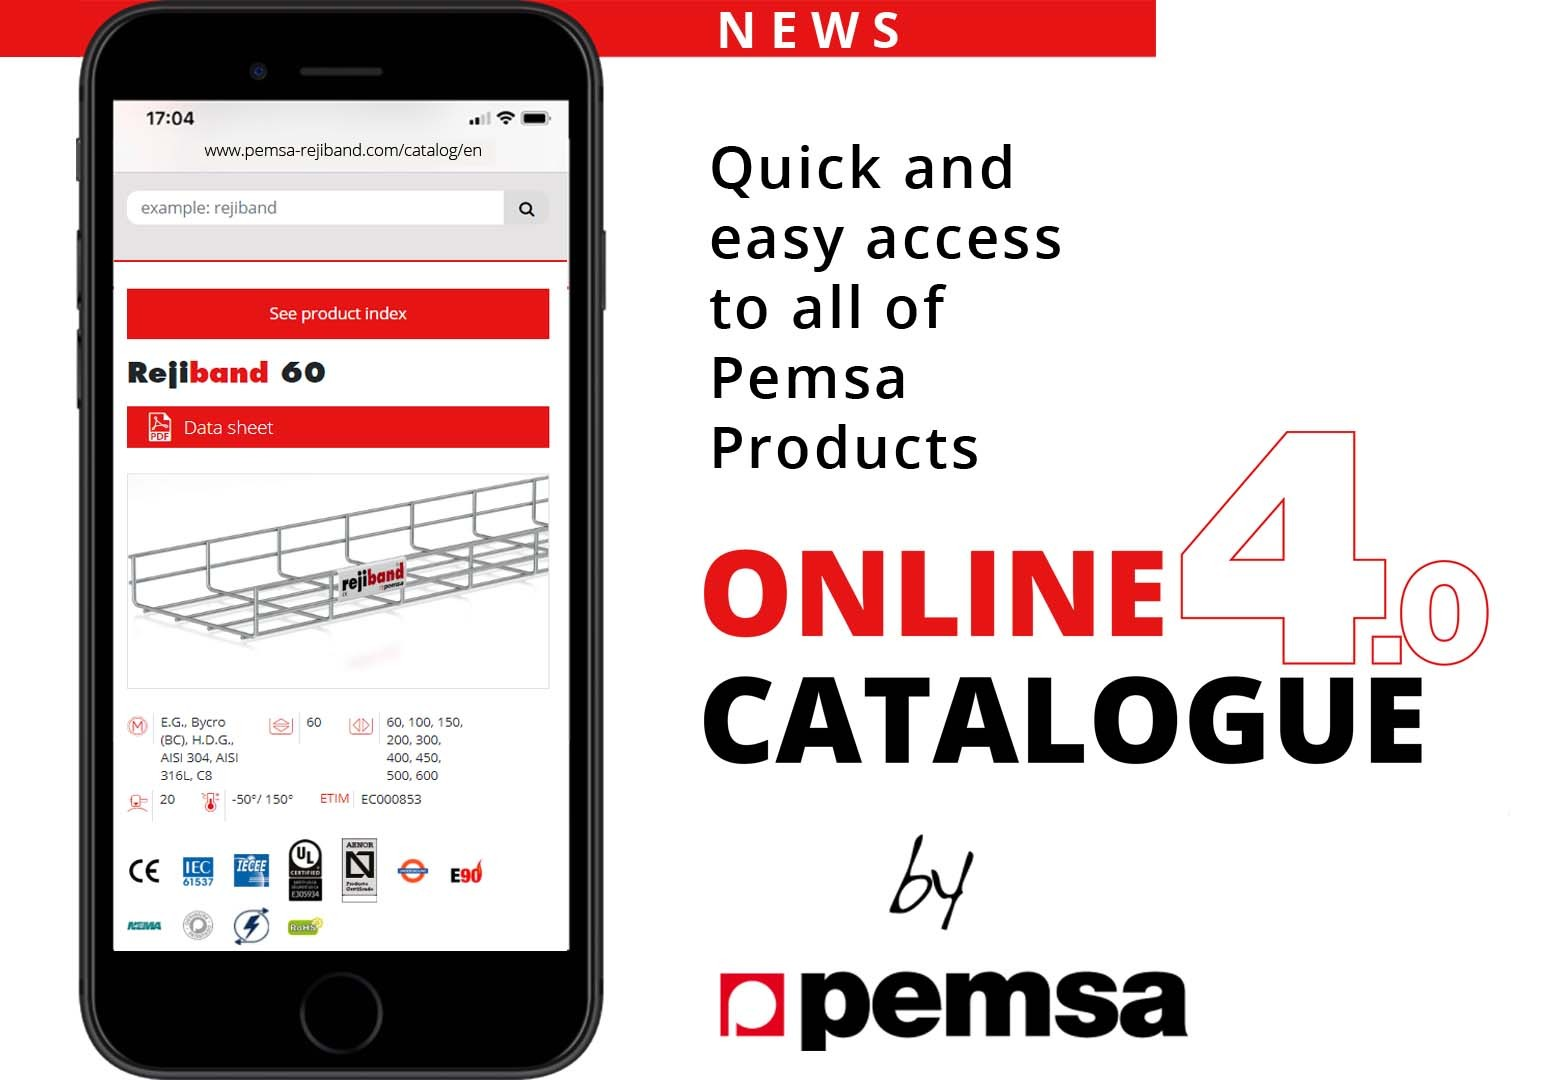 New Online Catalogue from Pemsa